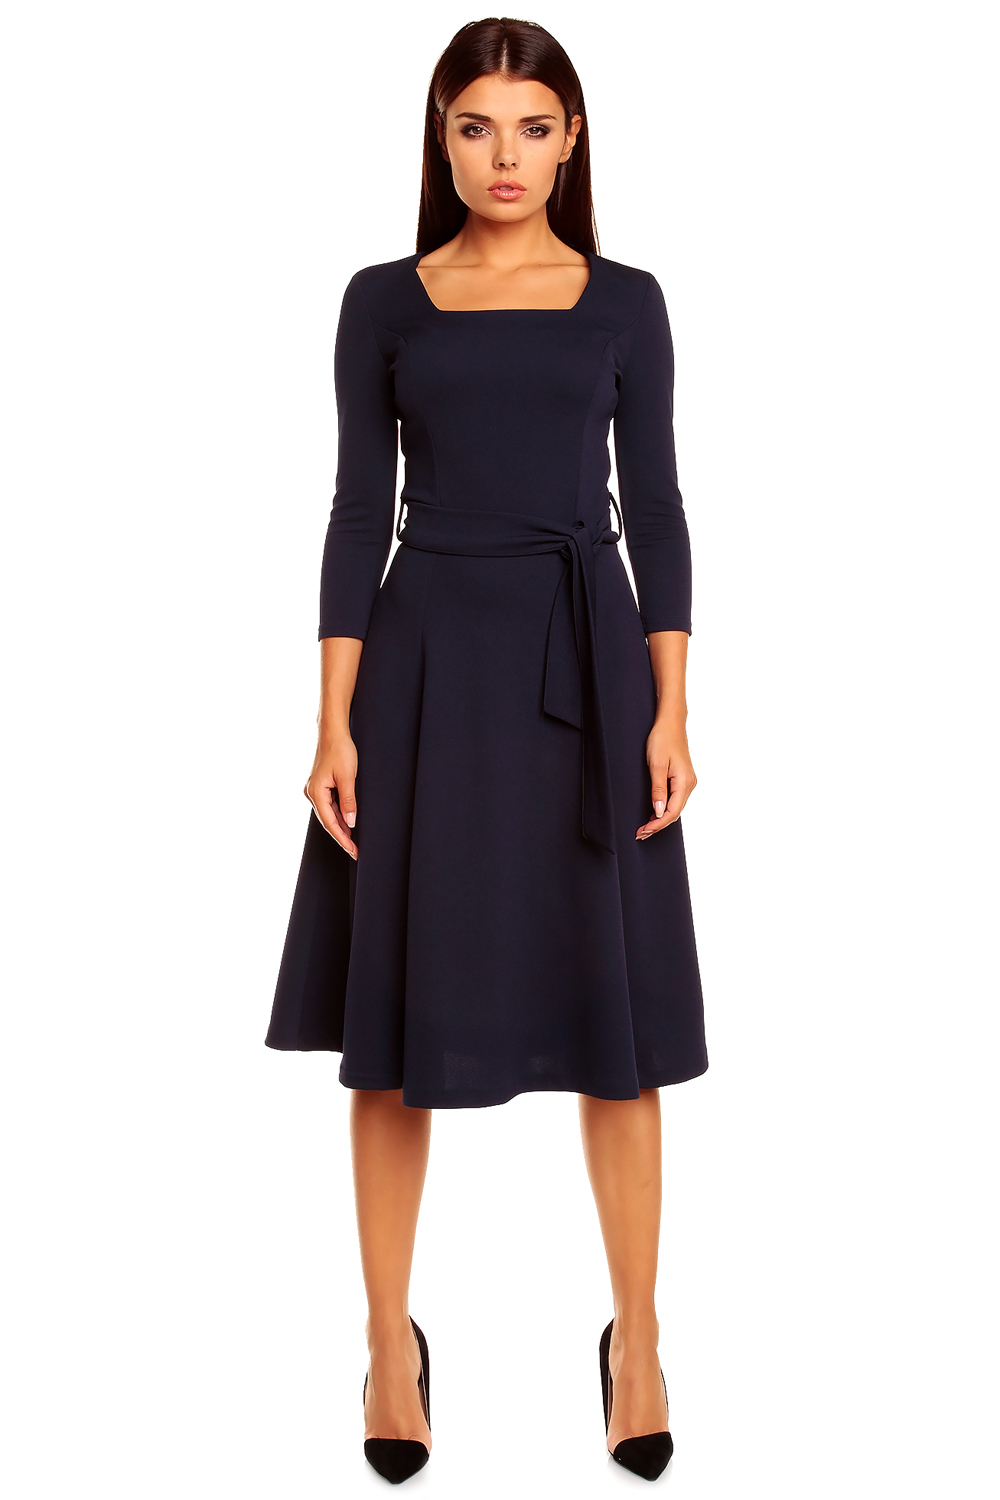 navy blue pleated dress with loop belts